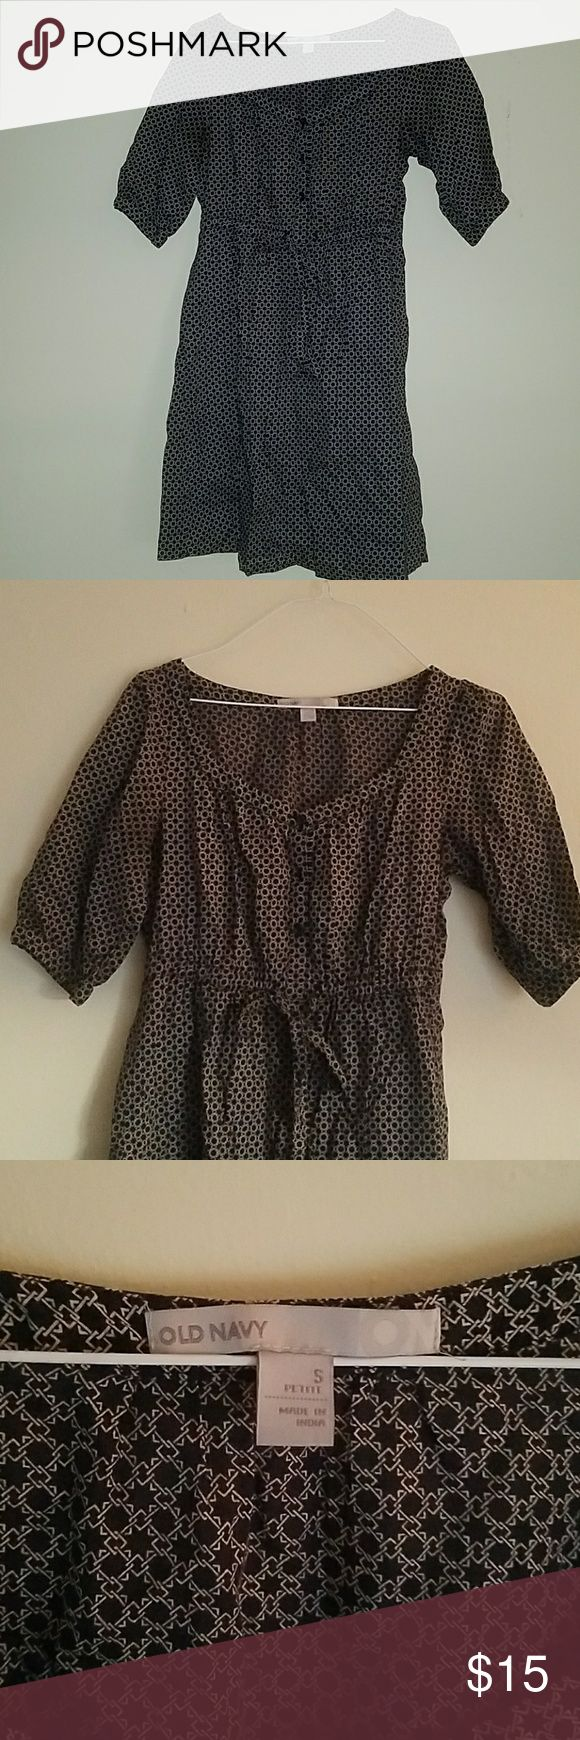 Midi length Dress Black and white dress from Old Navy. Fairly new. The size is Small in Petite. Old Navy Dresses Midi